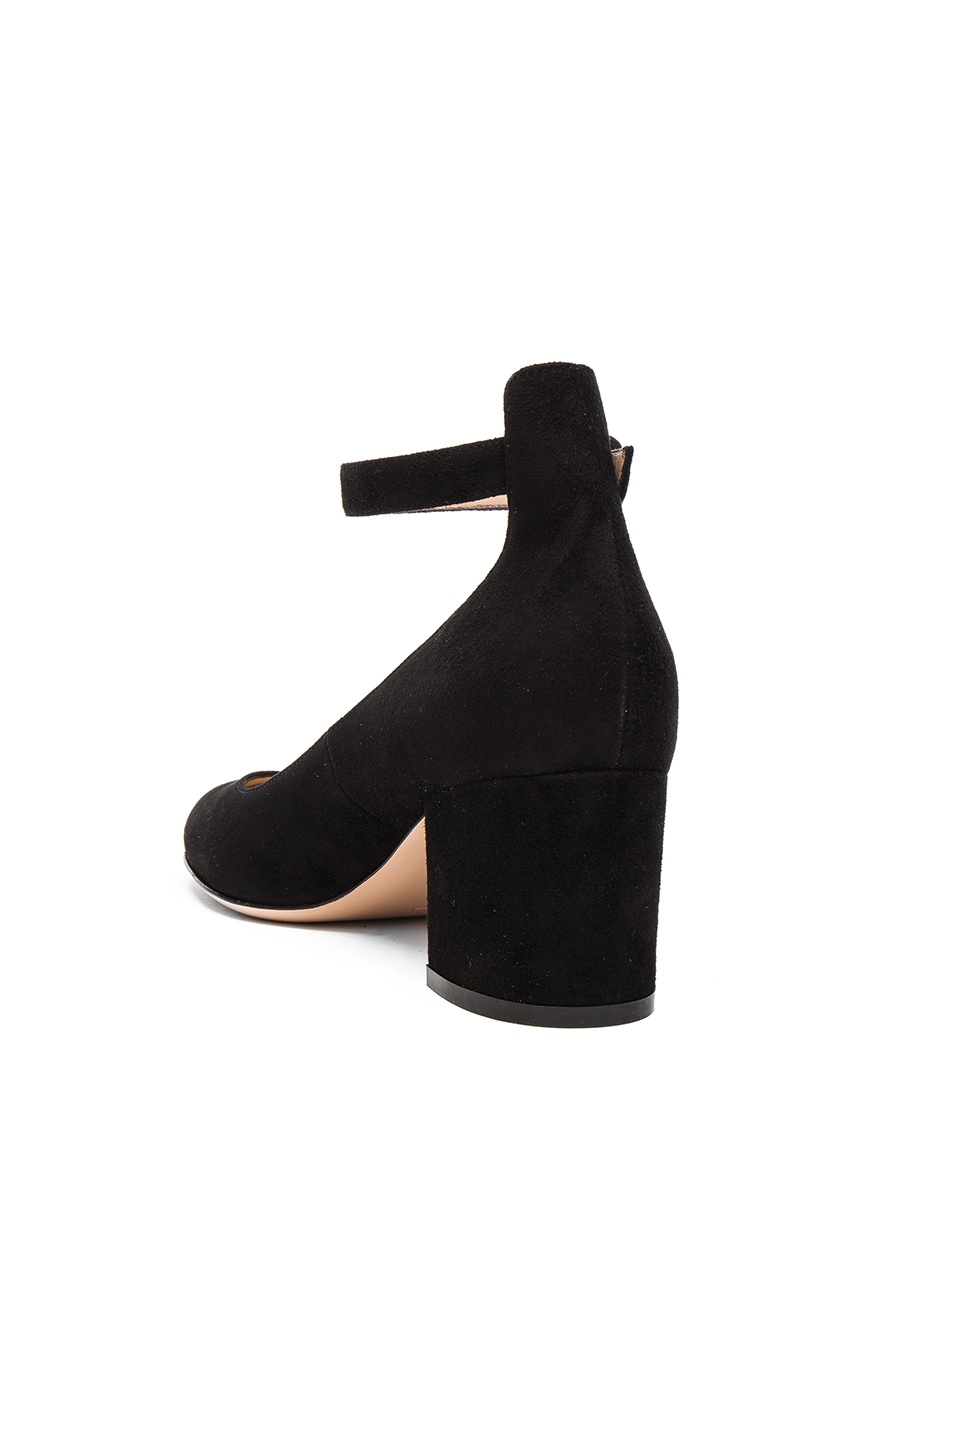 Image 3 of Gianvito Rossi Suede Ankle Strap Flats in Black